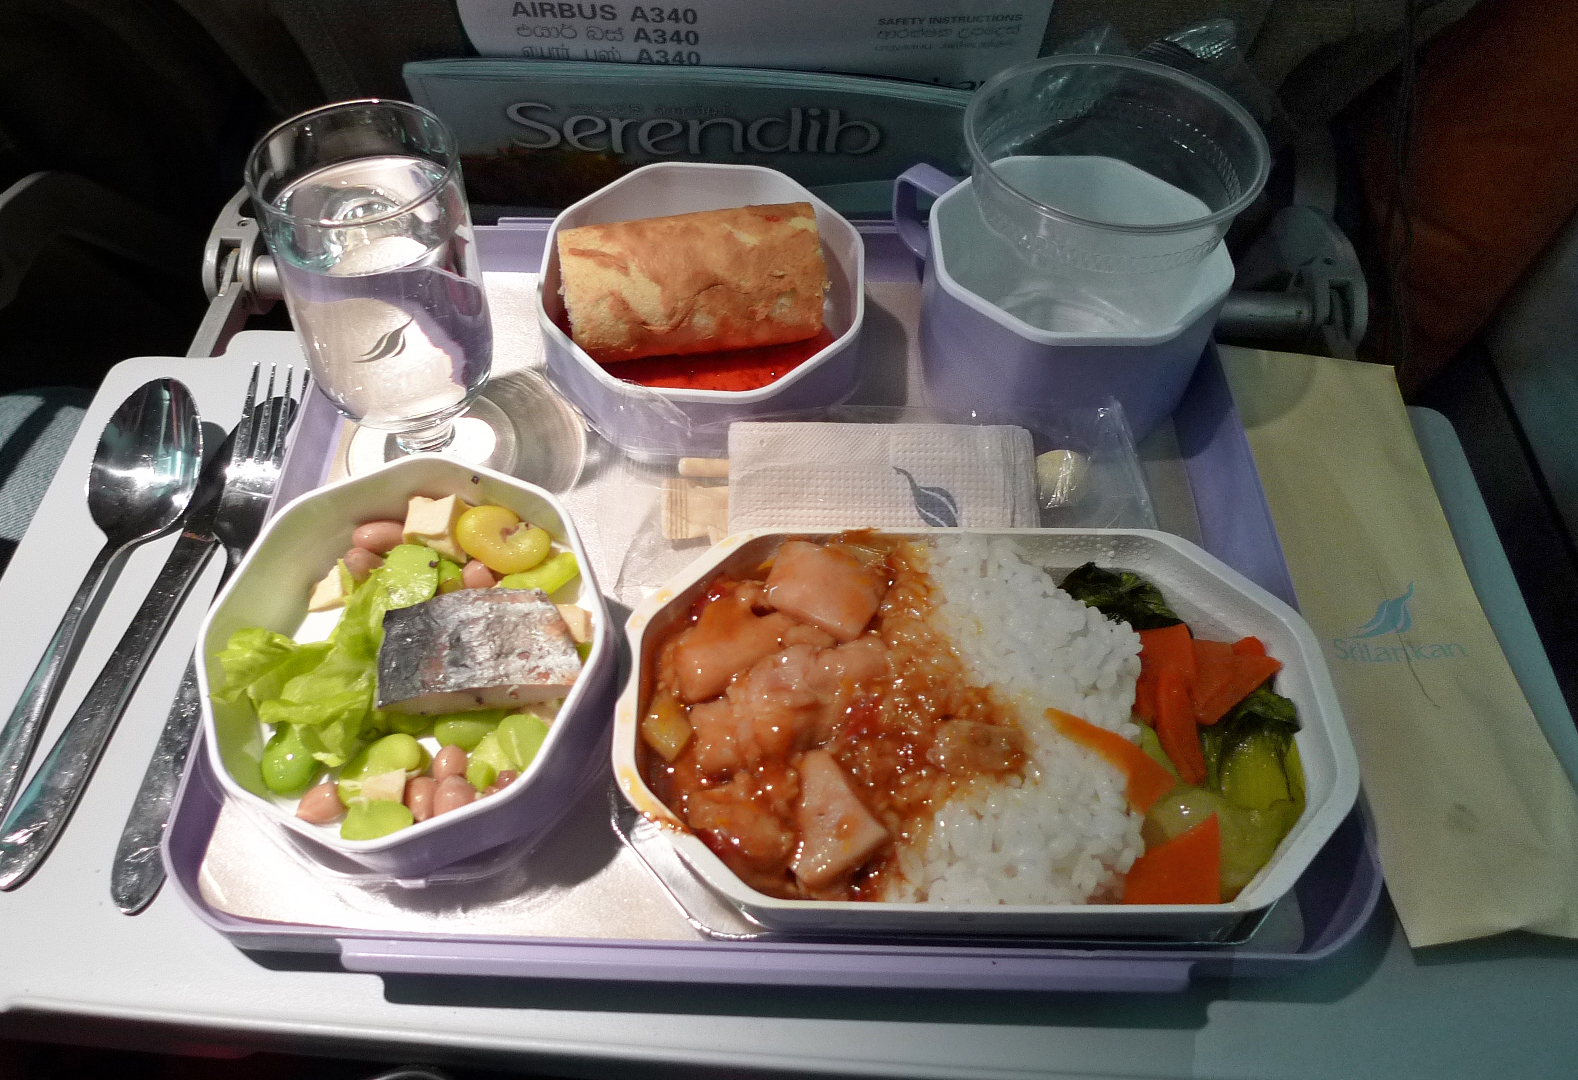 Sri Lankan Airlines Economy Meal